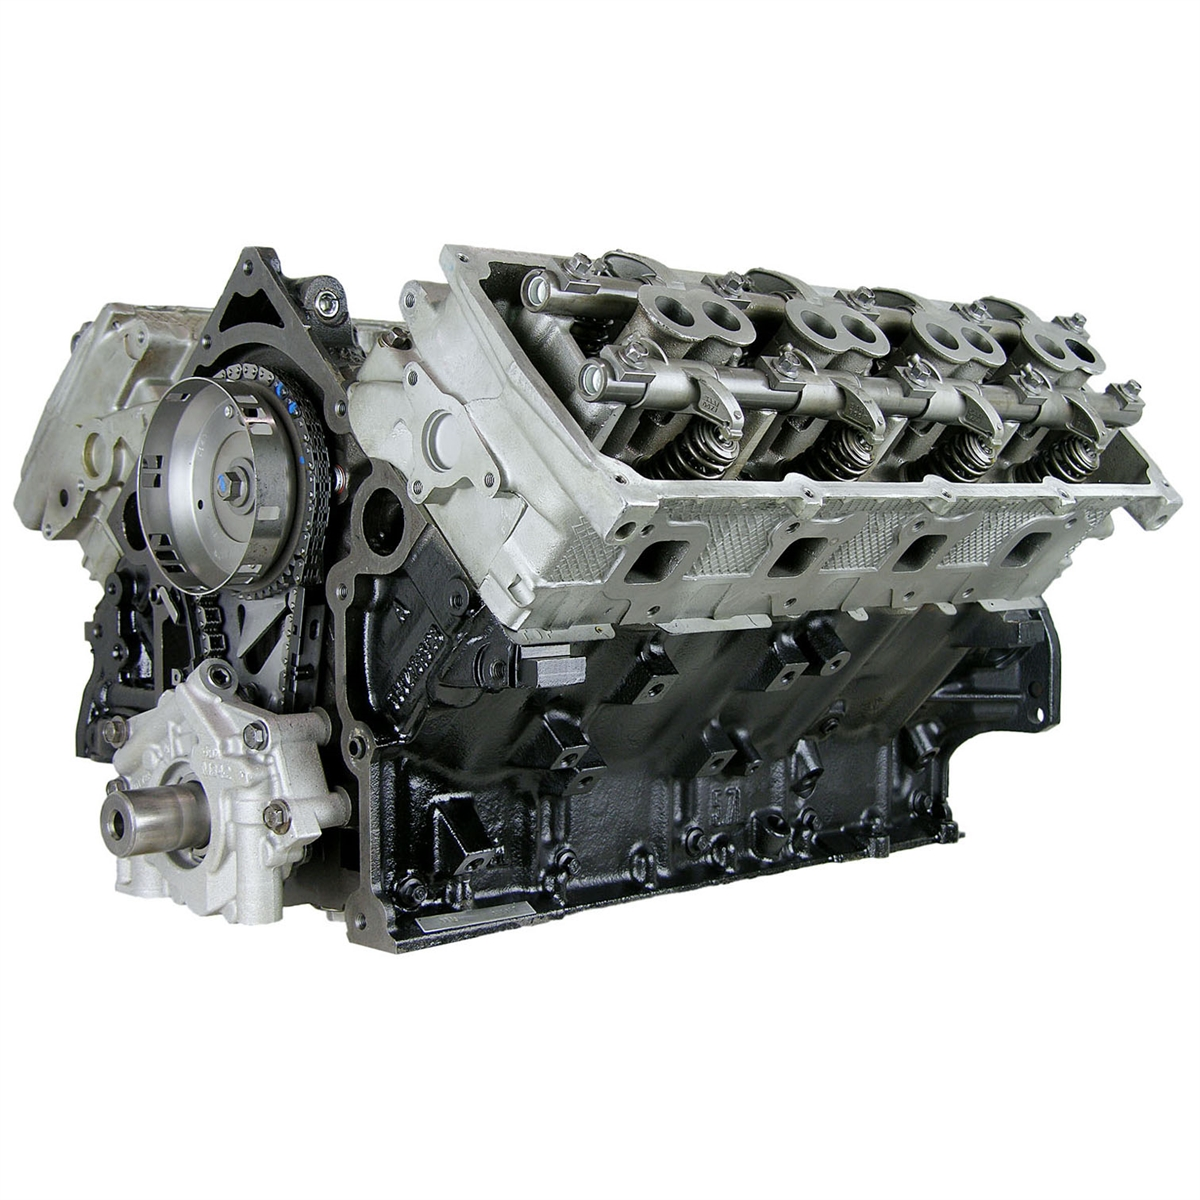 ATK HP103 Gen III Hemi 5.7L 400HP Crate EngineATK High Performance Engines